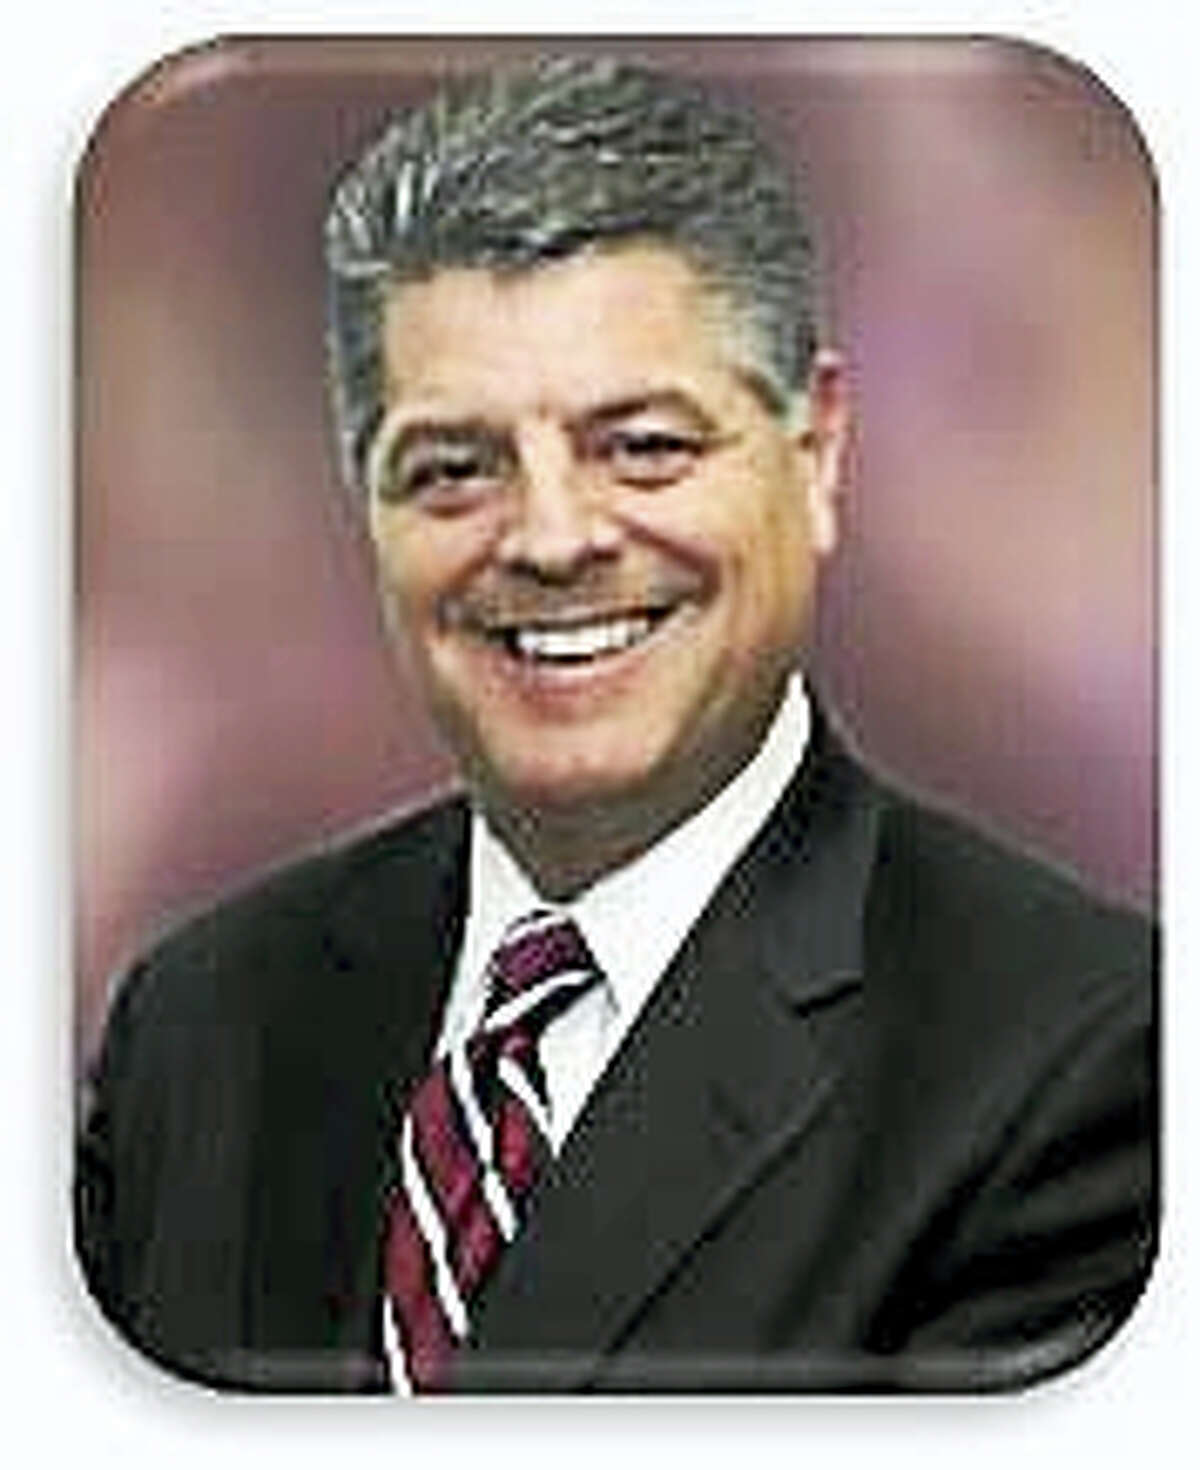 Len Matteo, of EDGE Technology Service, is among this year's 2017 Elm City Legends awards recipients